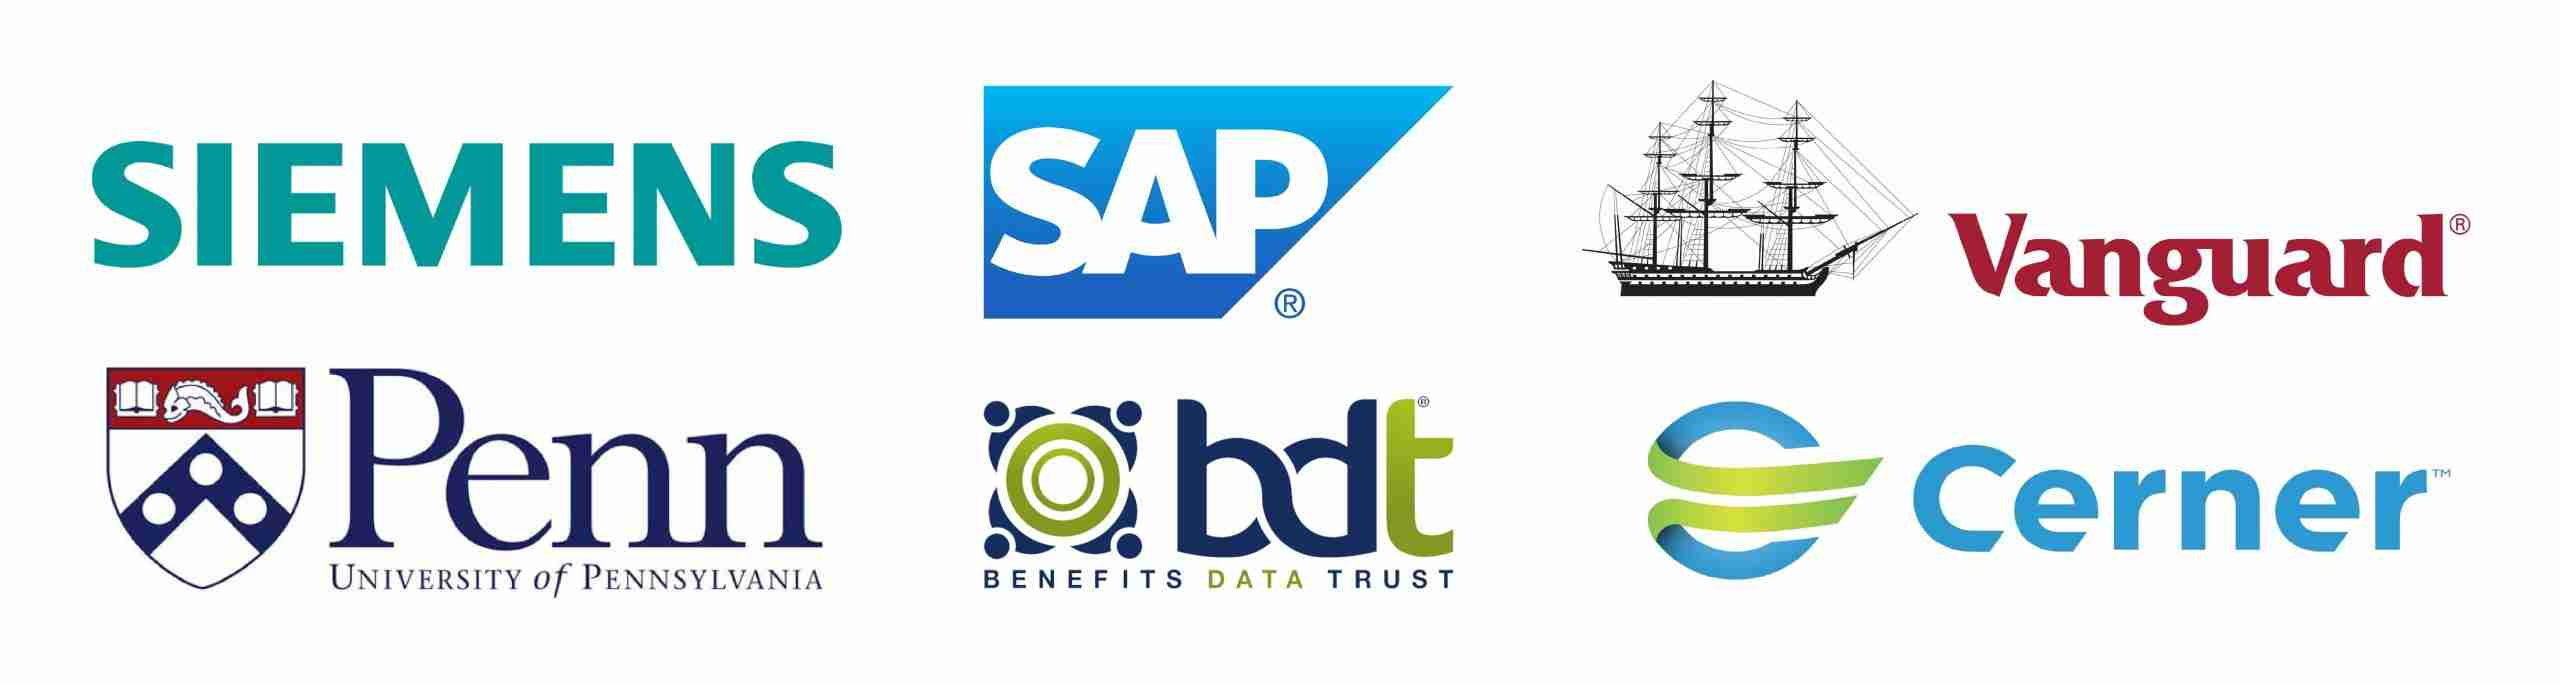 Logos Of Siemens, SAP, Vanguard, University Of Penn, Benefits Data Trust, Cerner